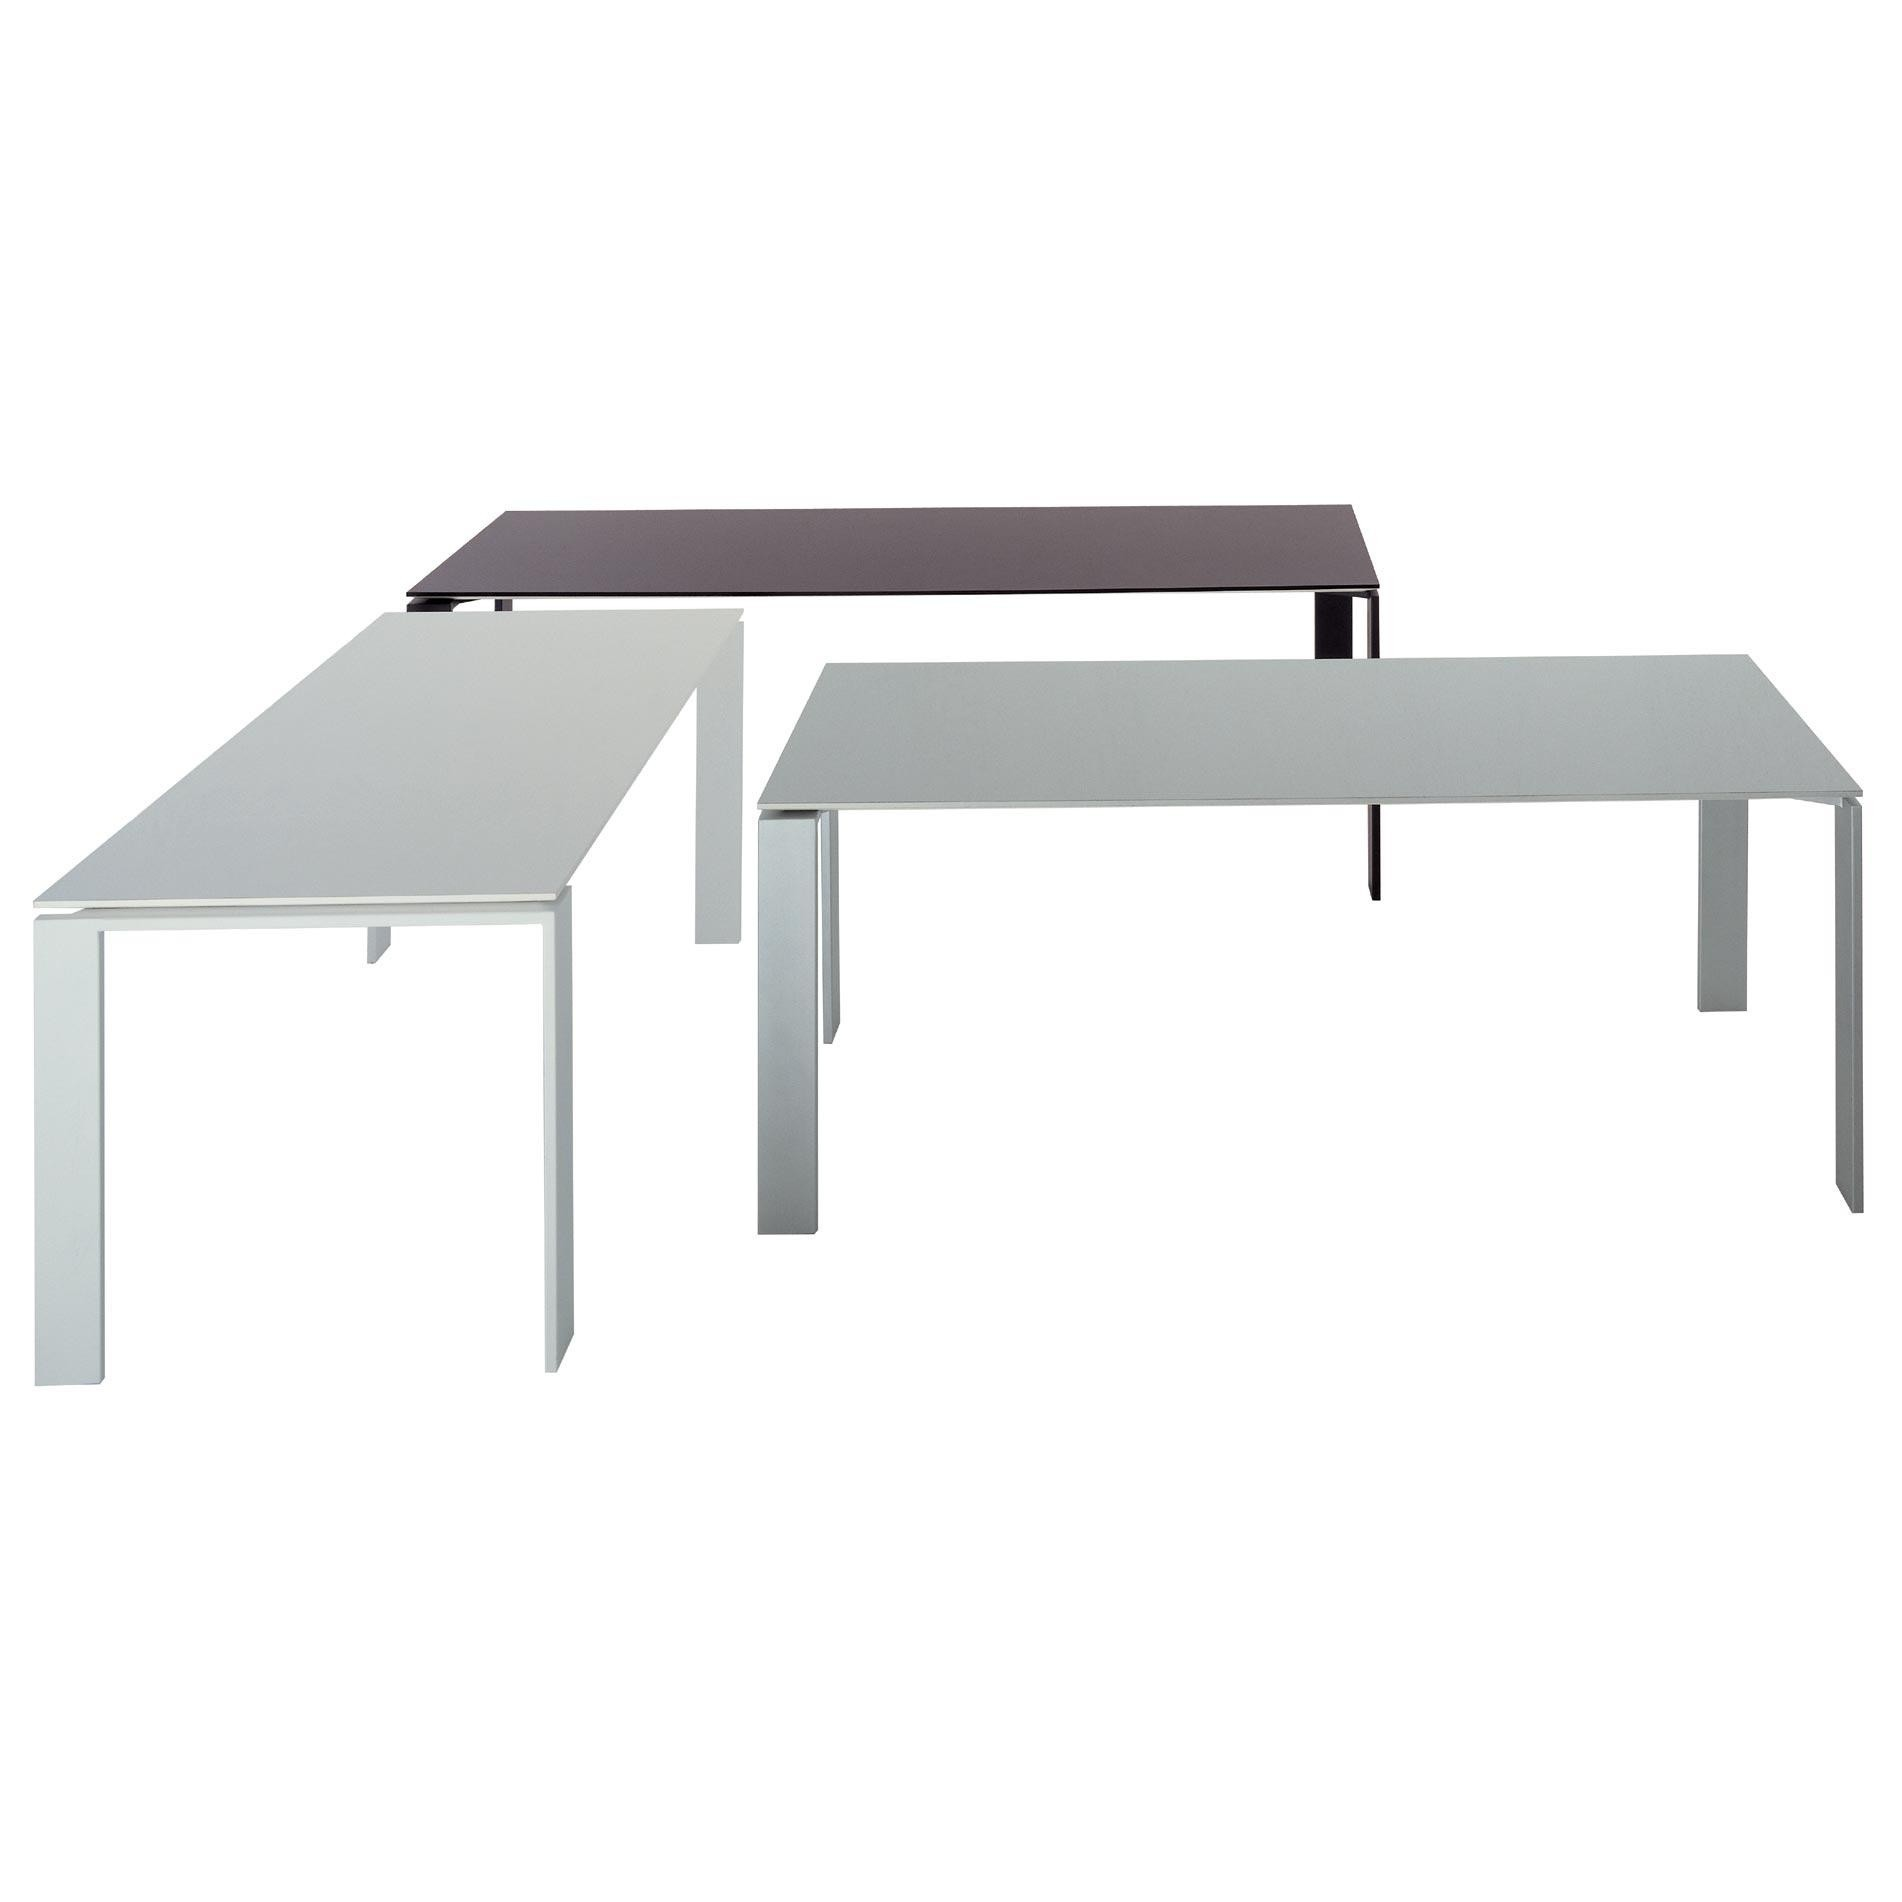 Four Table 190x79x72cm